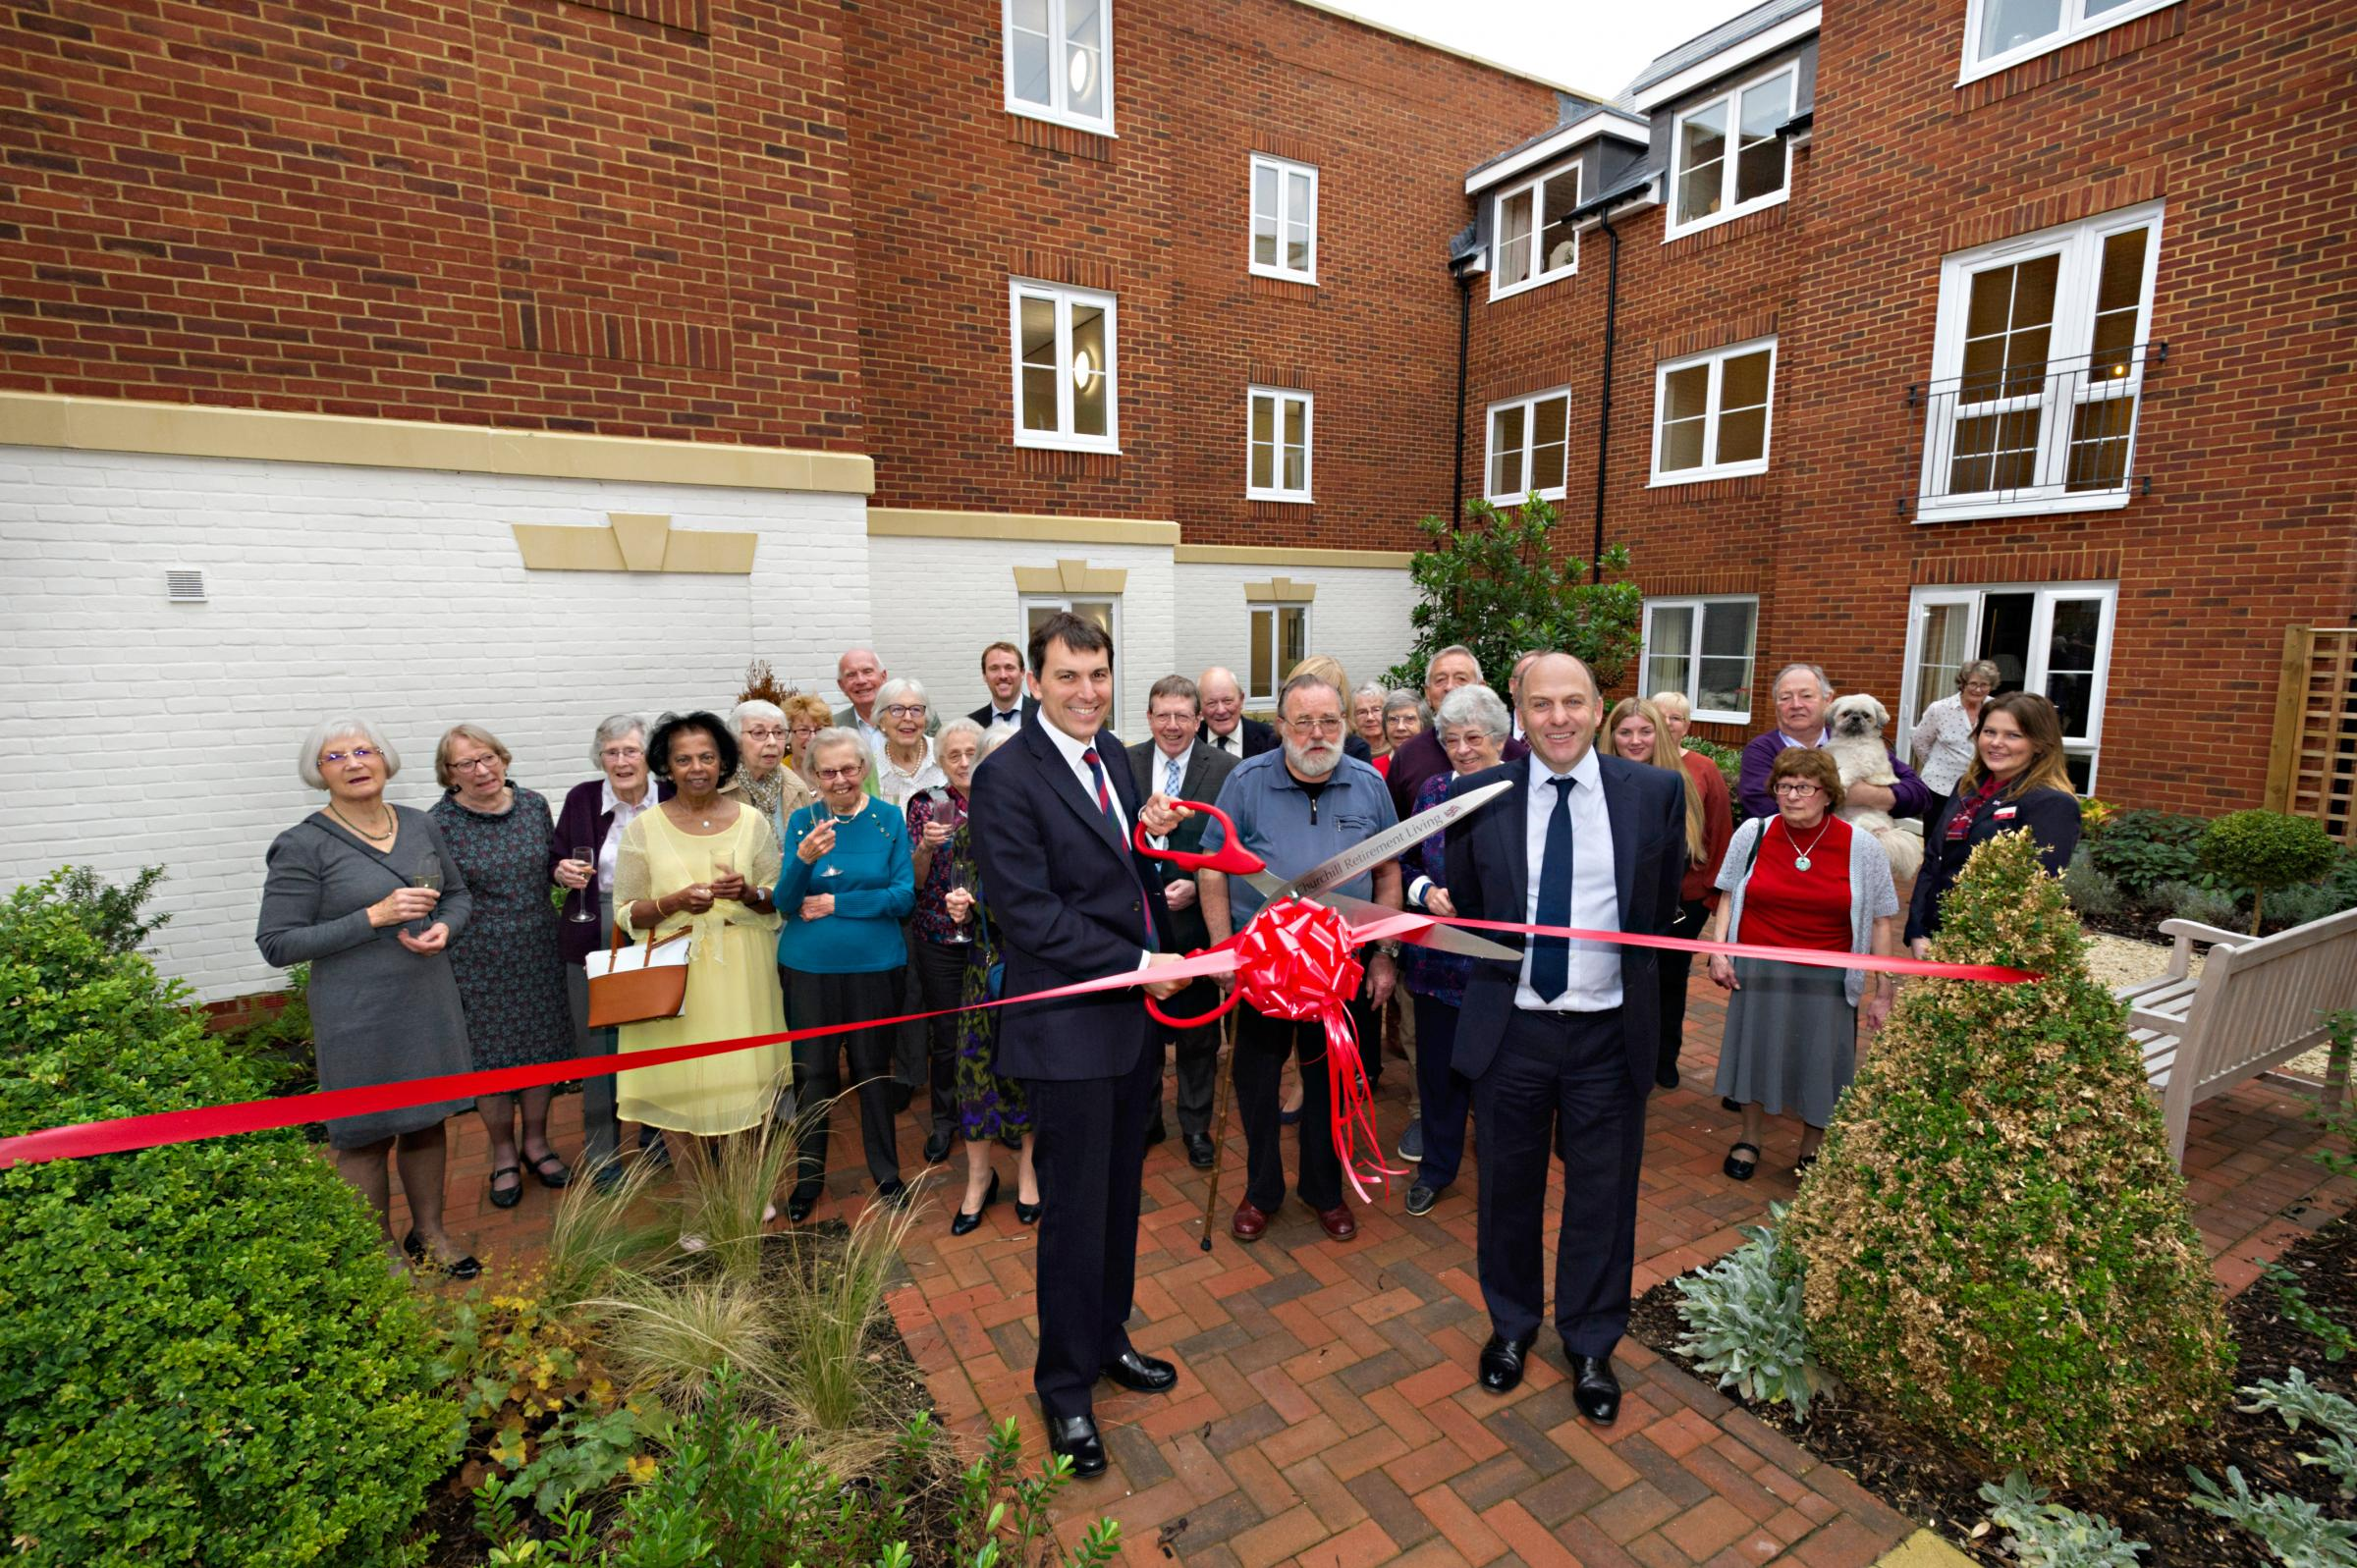 MP John Glen cuts the ribbon at the opening of Sarum Lodge in Salisbury